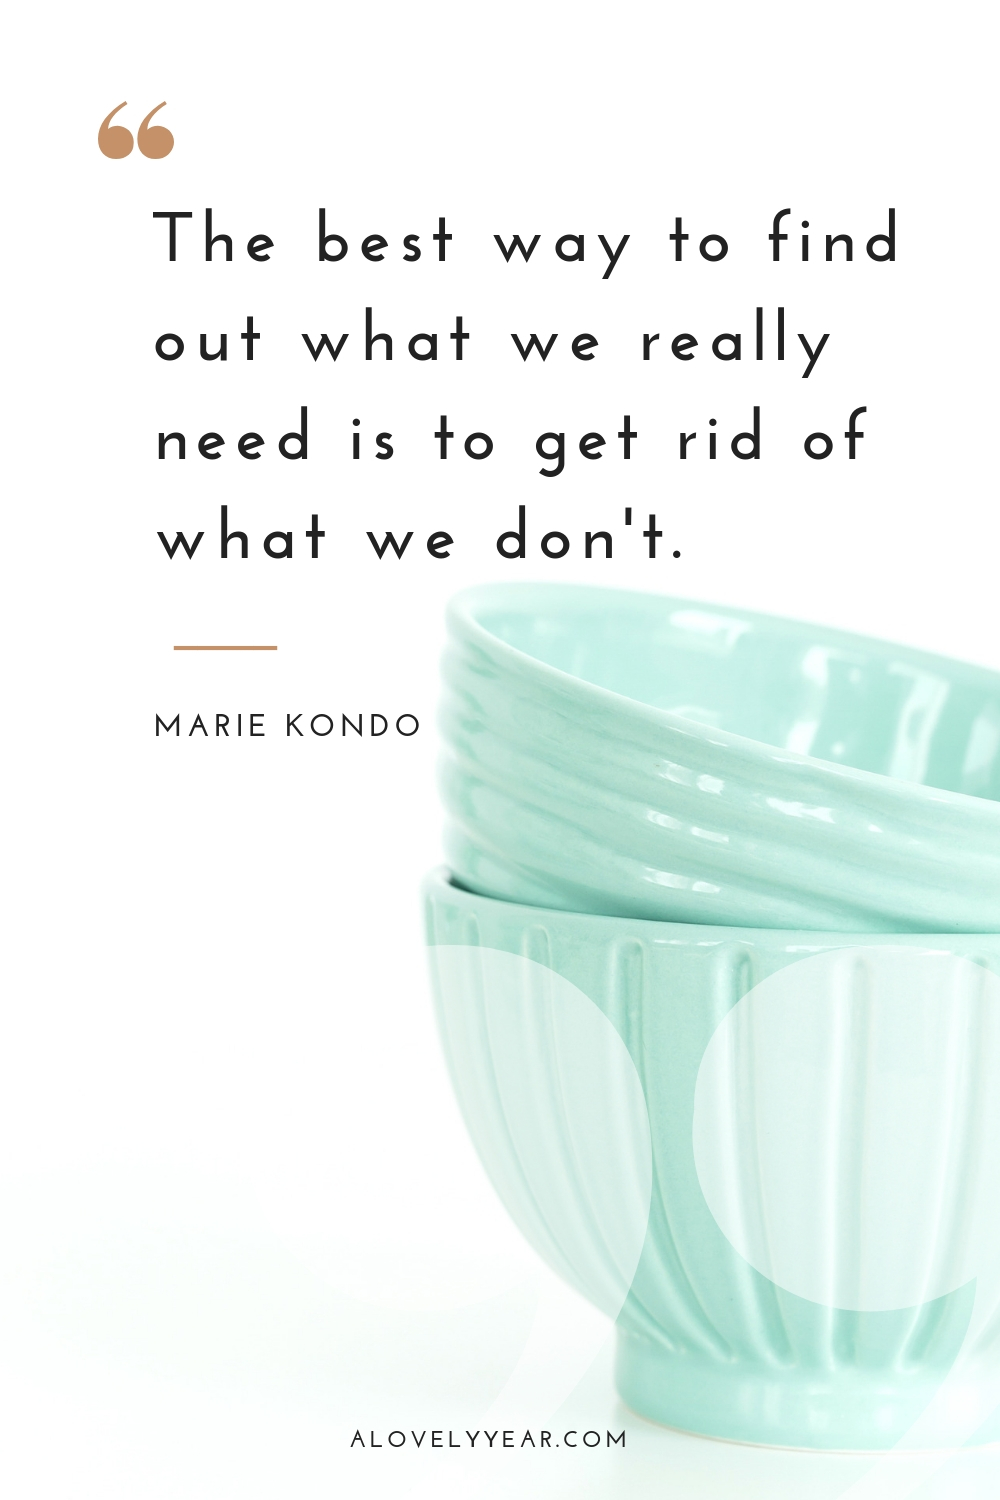 Decluttering quotes to motivate and inspire   The best way to find out what we really need is to get rid of what we don't ― Marie Kondo